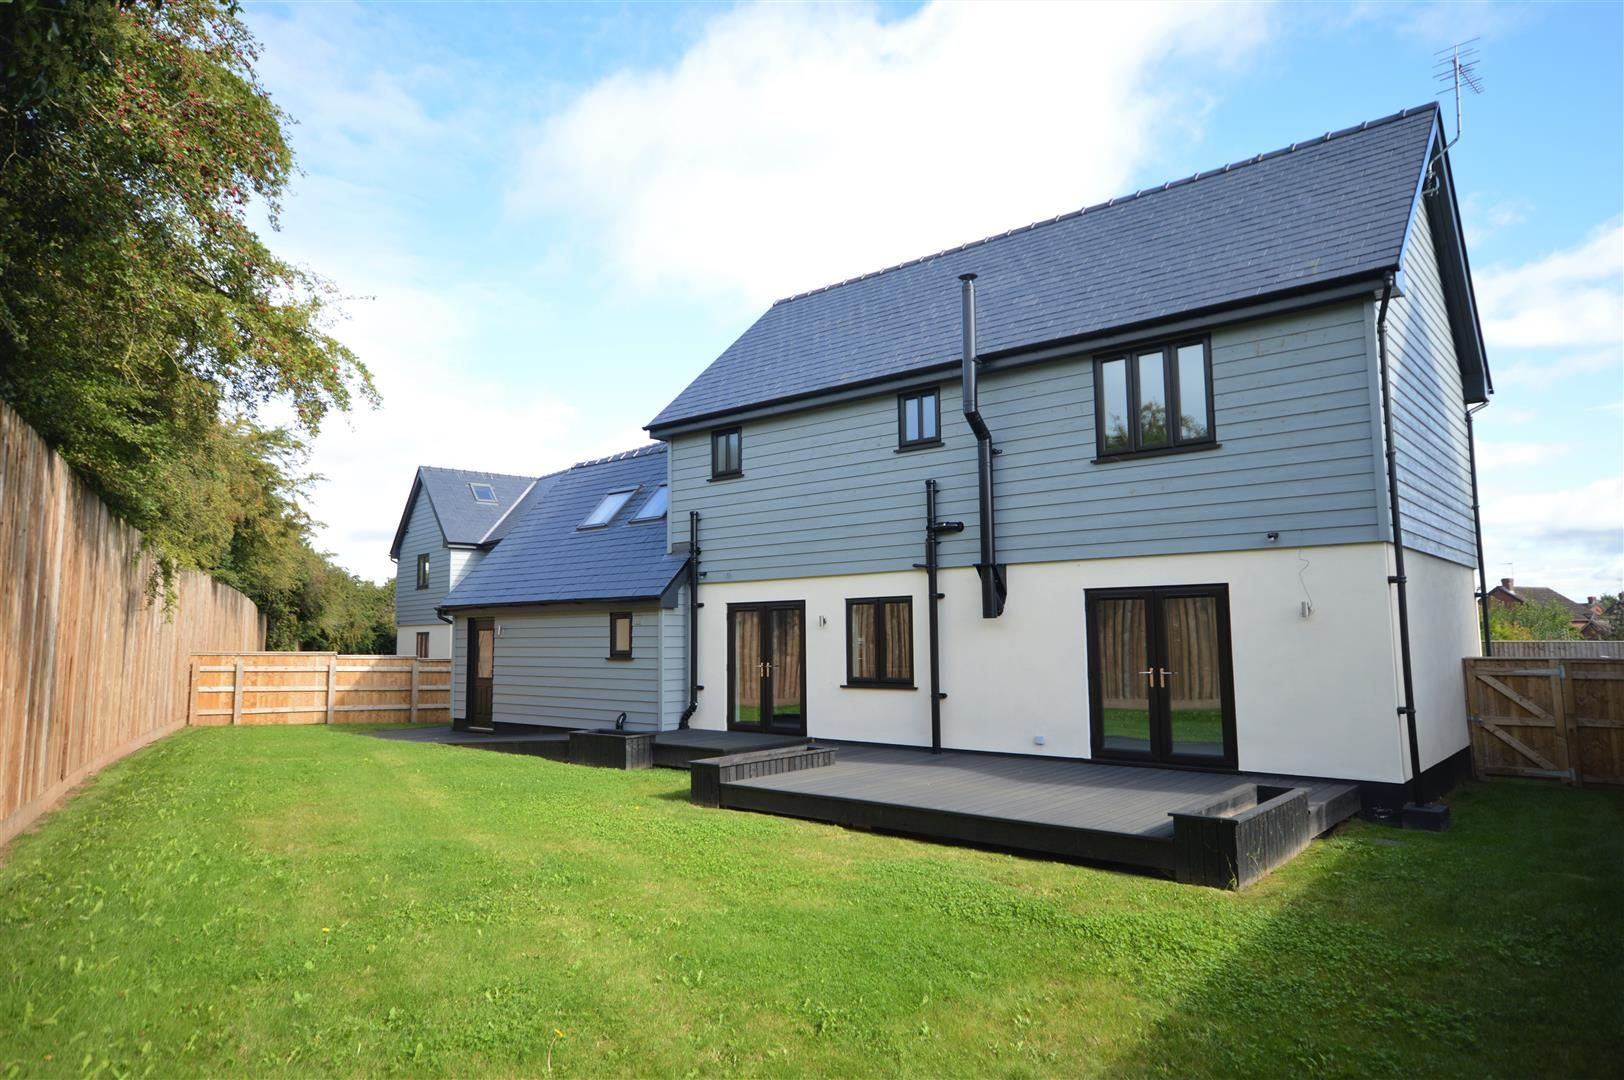 4 bed detached for sale in Brimfield 17